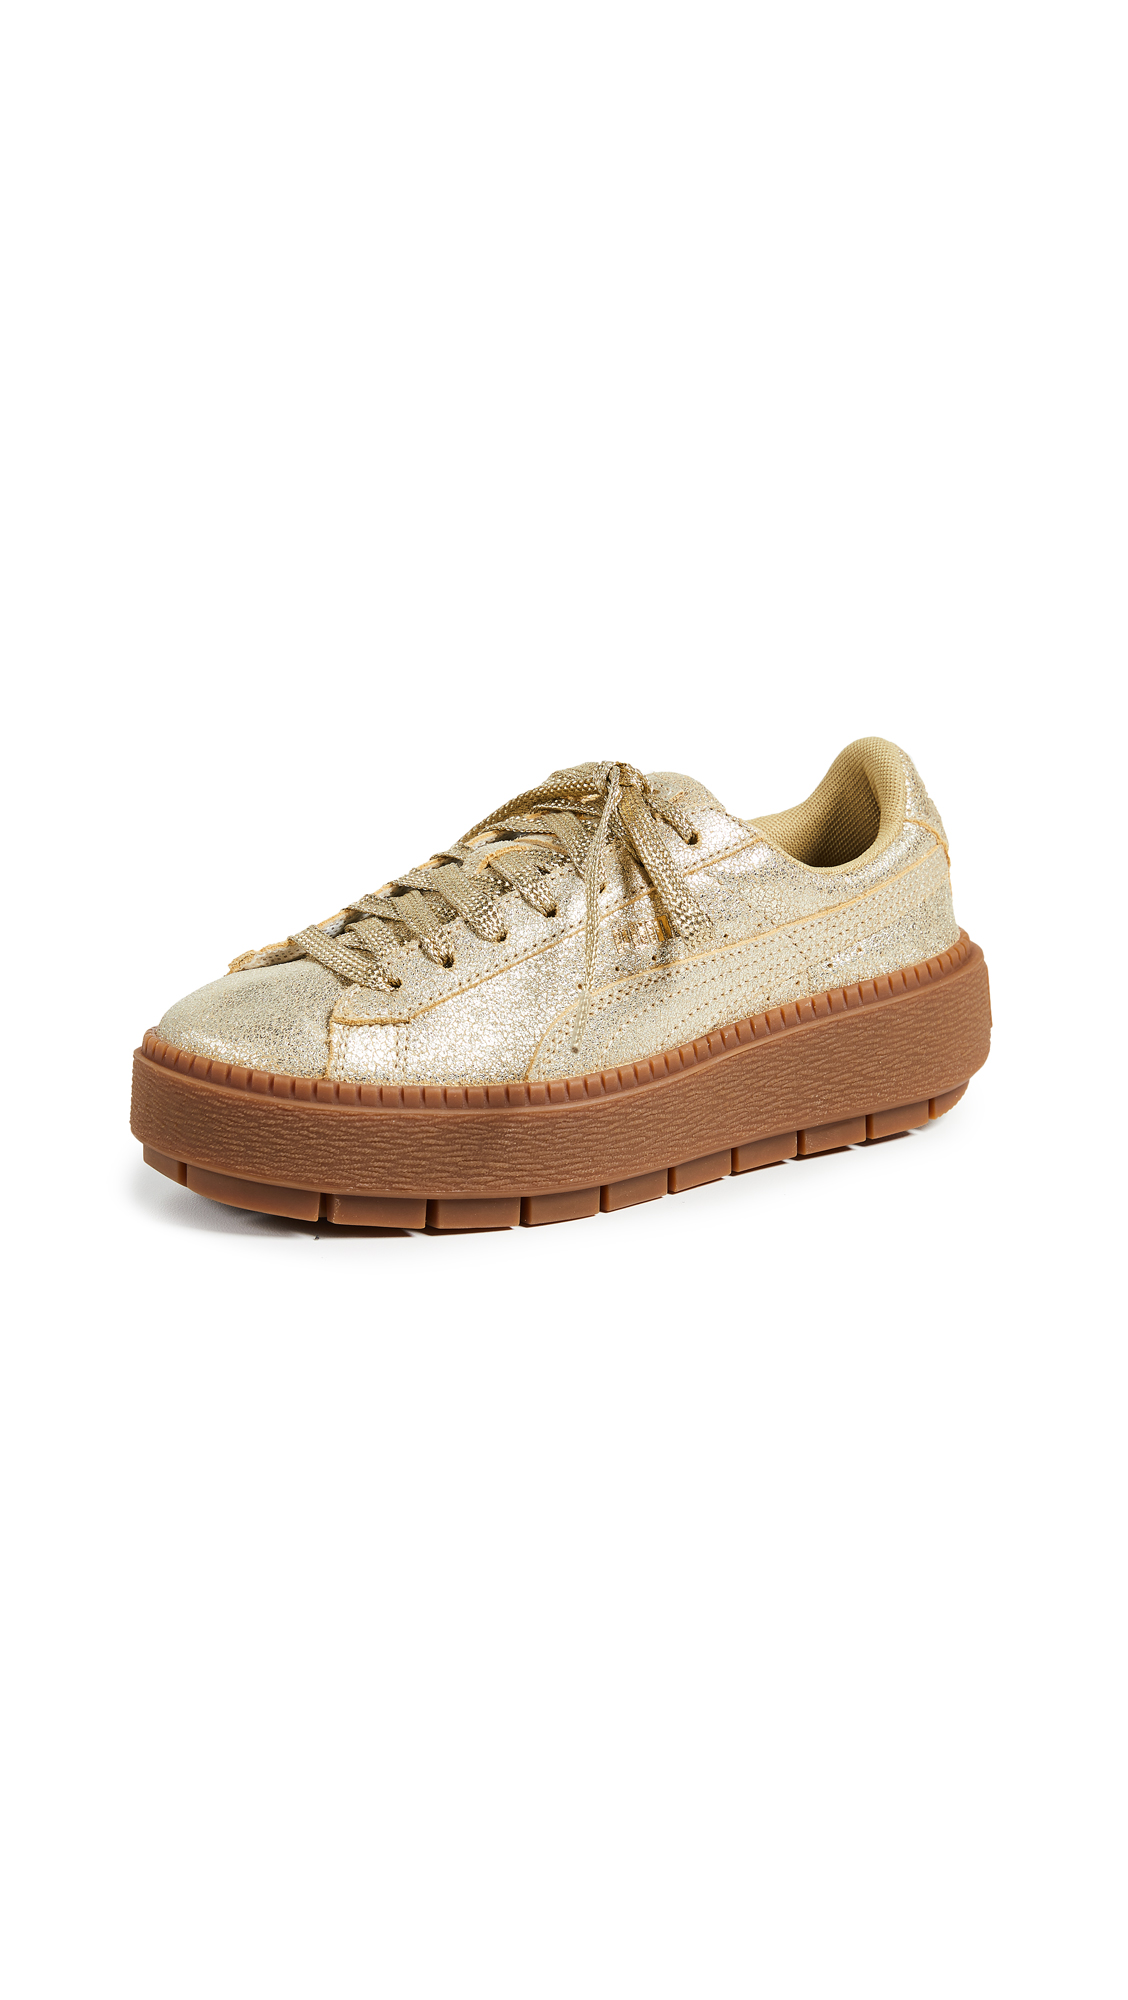 PUMA Basket Platform Trace Sneakers - Metallic Gold